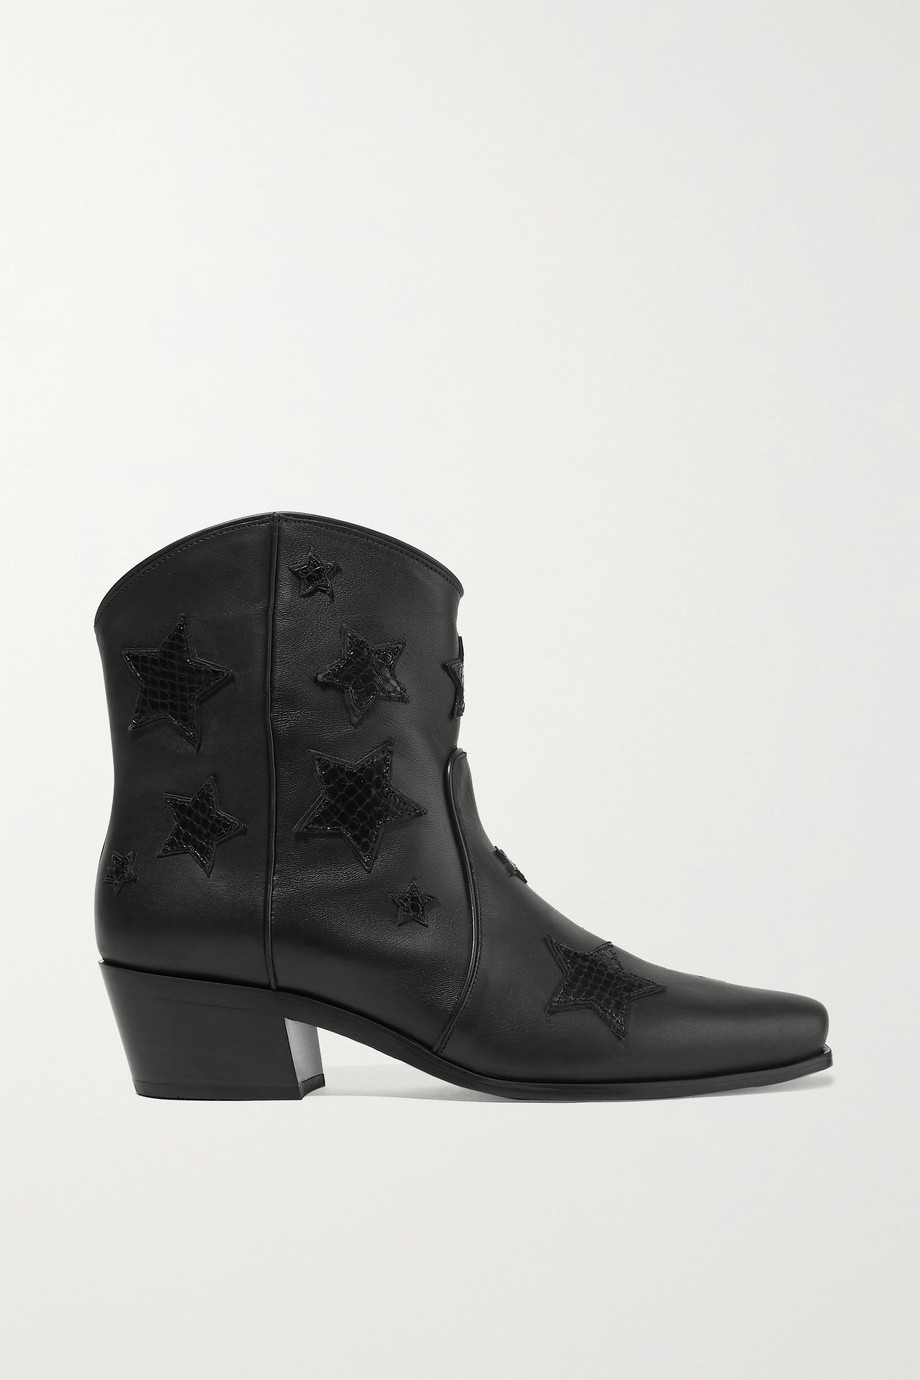 Miu Miu Embroidered smooth and snake-effect leather ankle boots